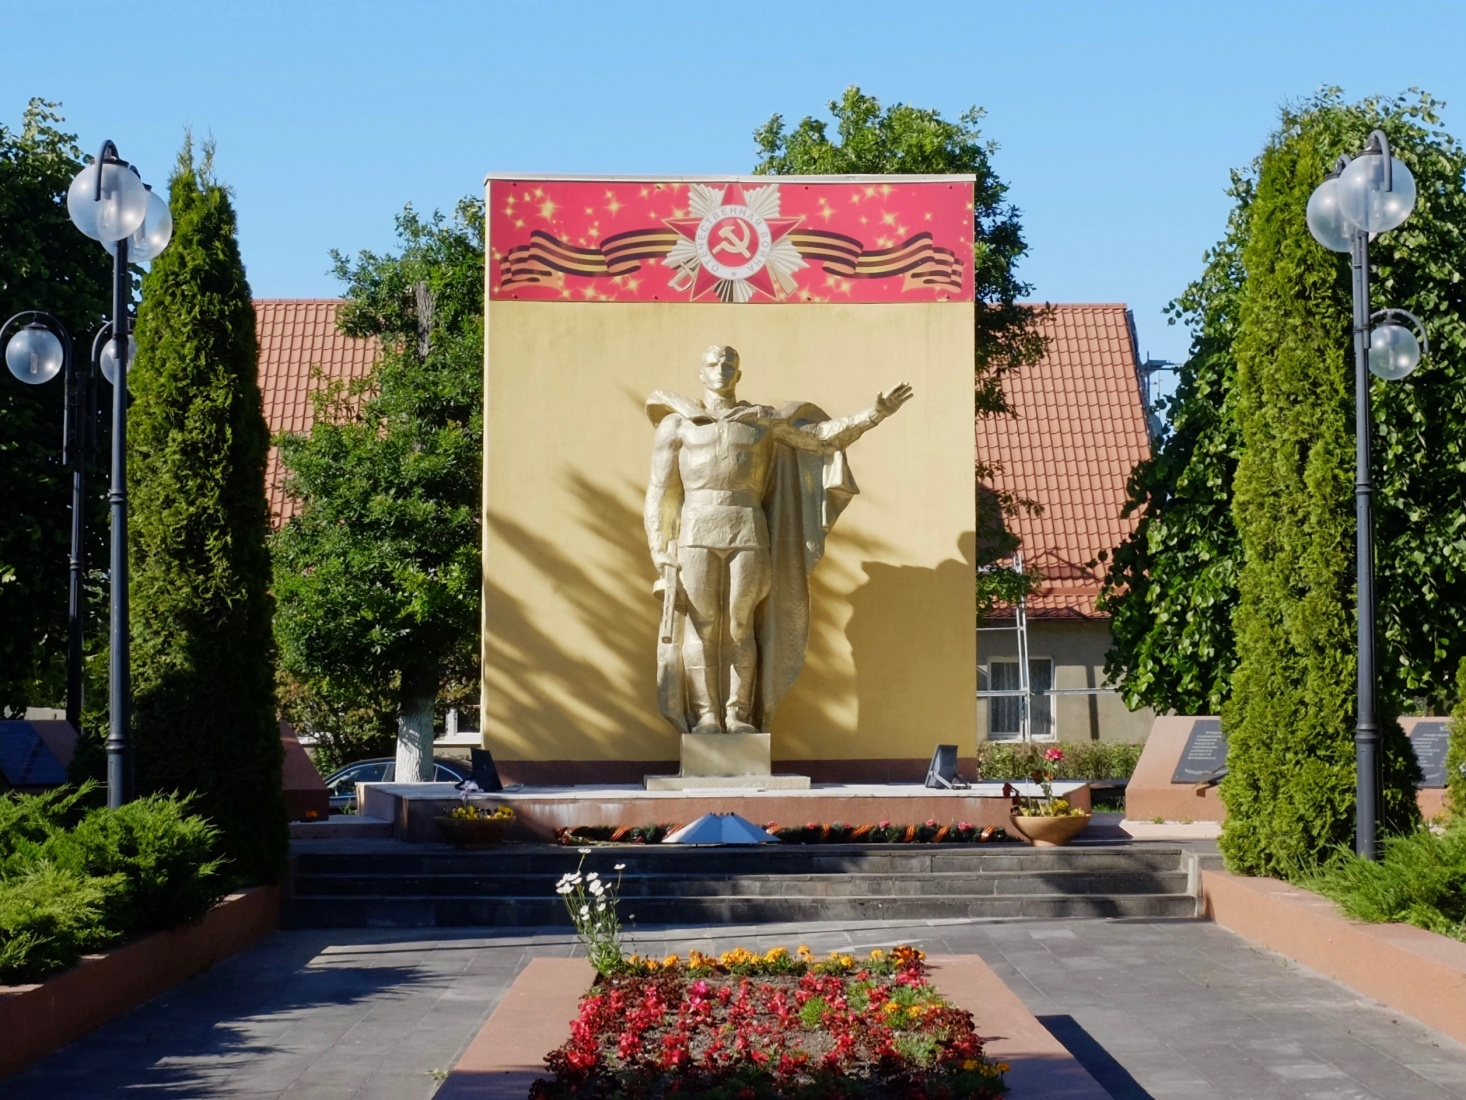 Soviet war memorial near the center of town in Yantarny, near Kaliningrad, Russia.